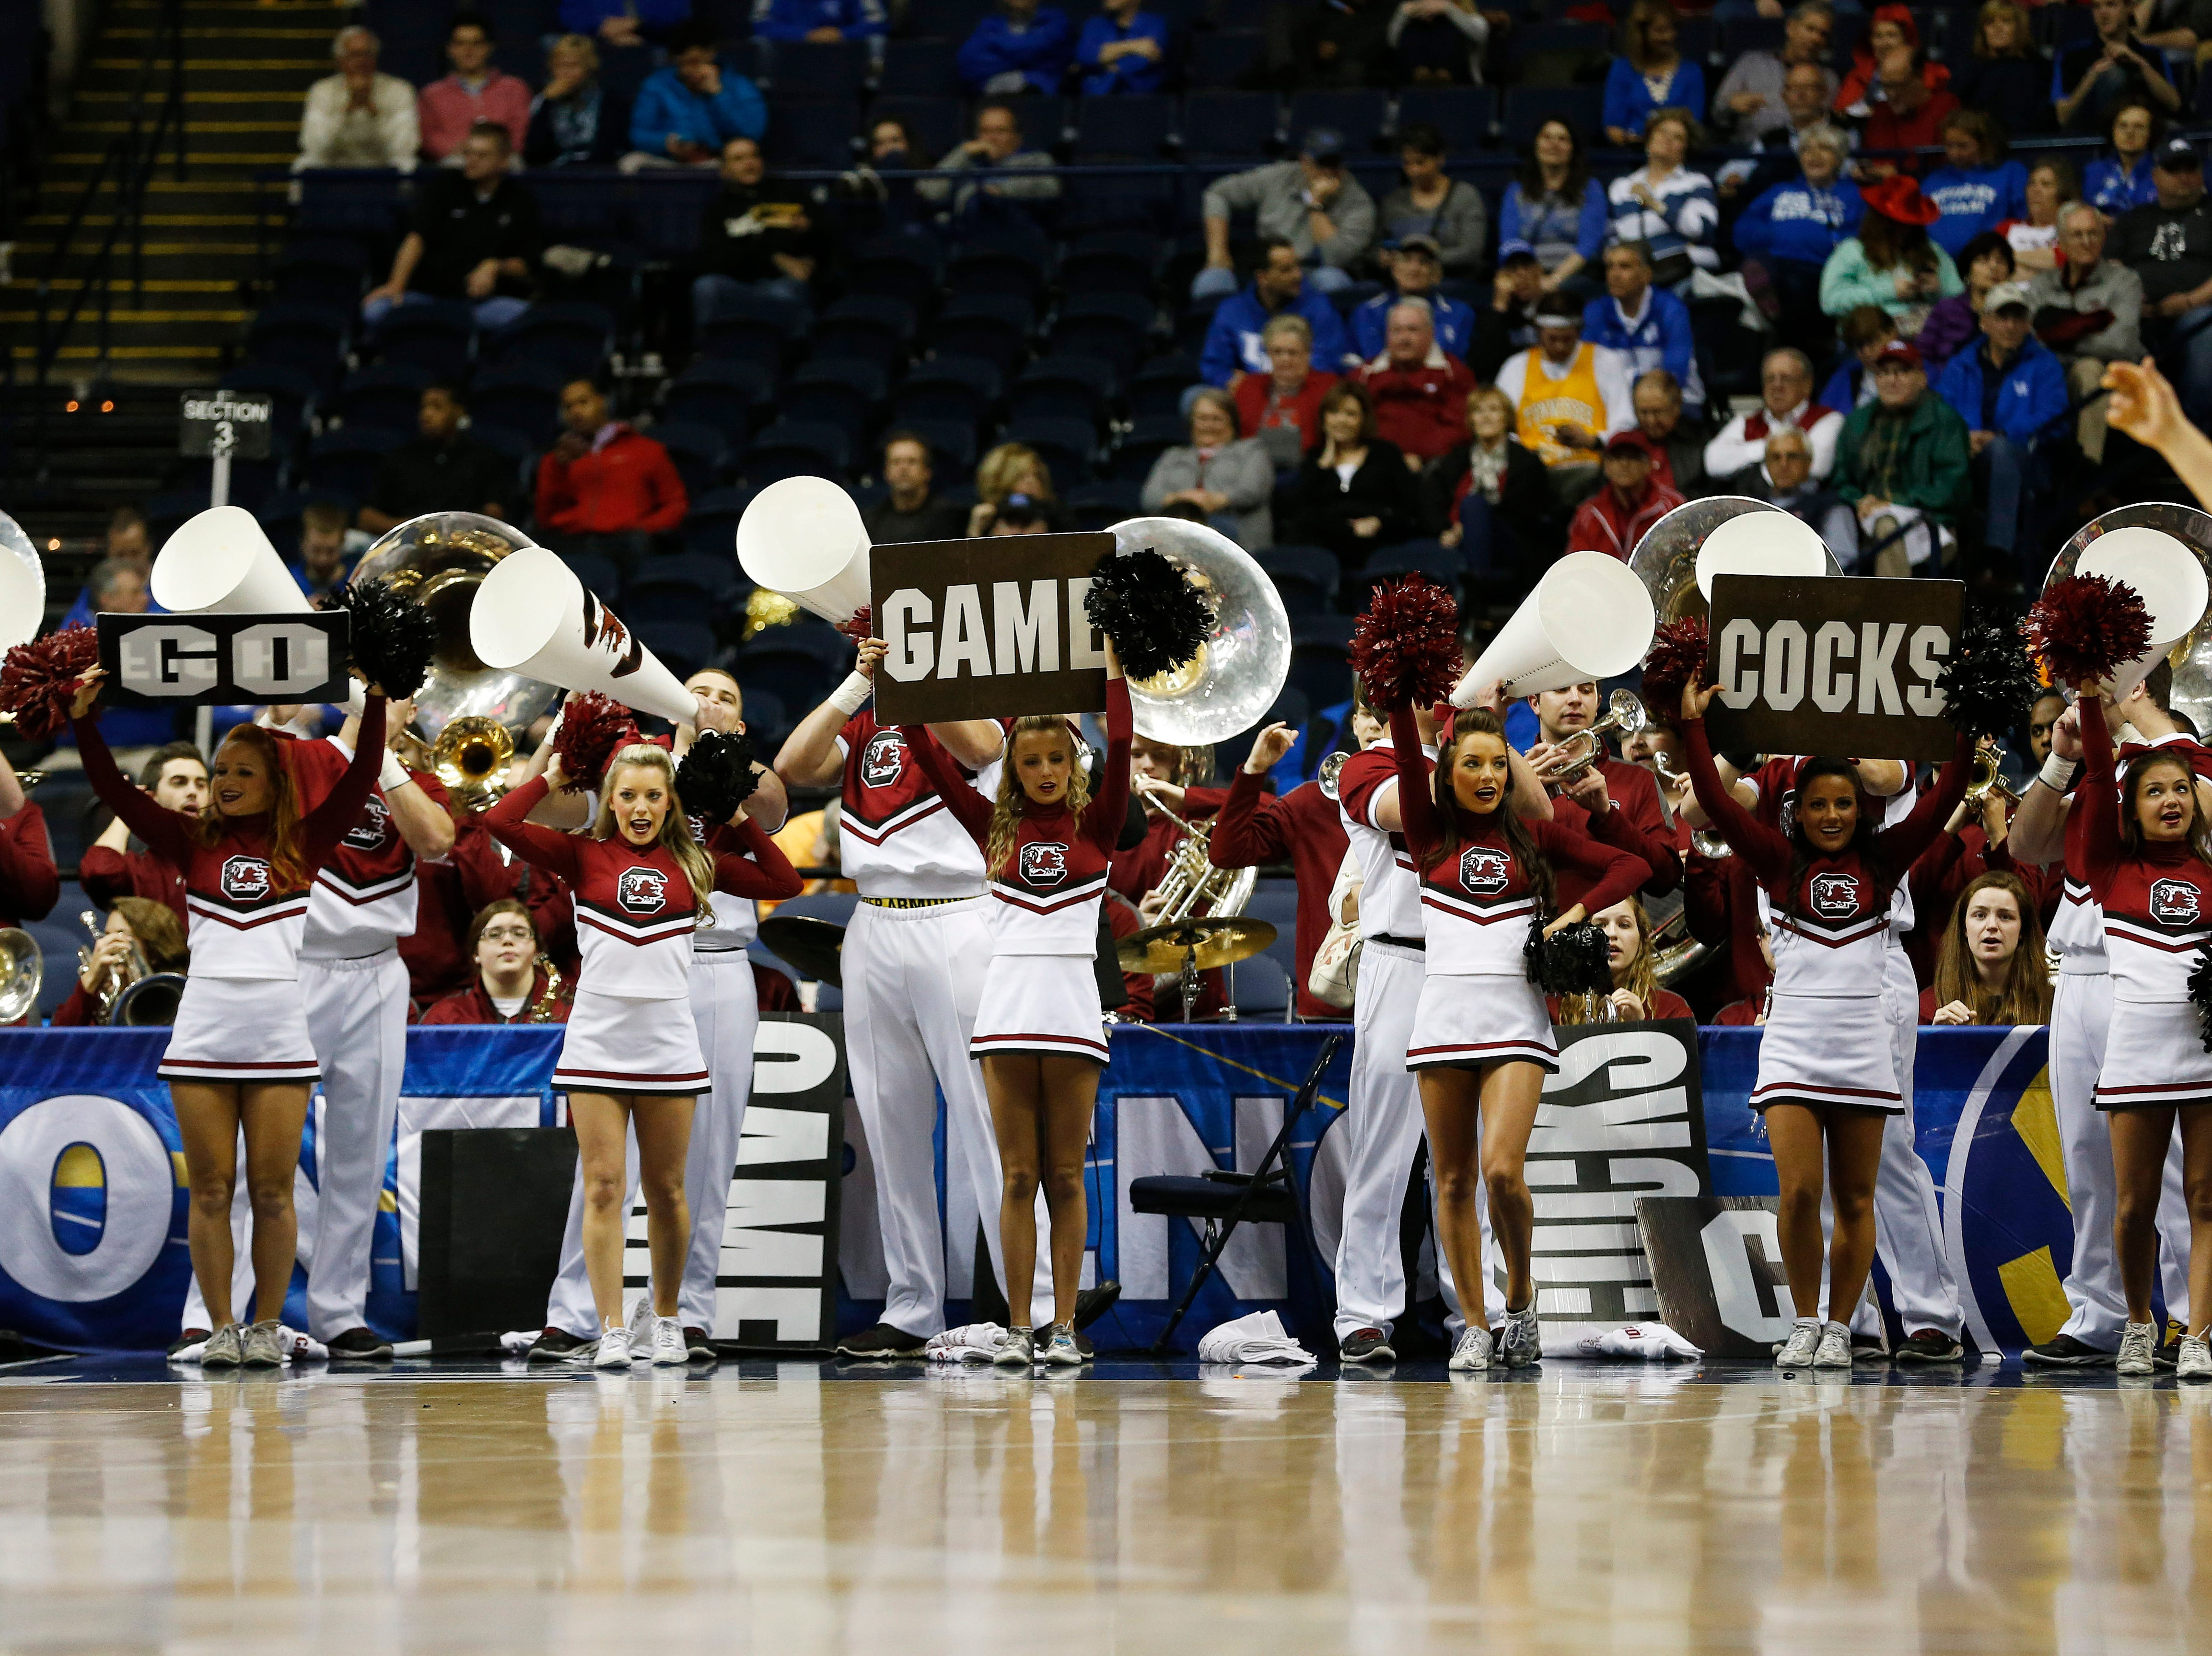 South Carolina cheerleaders perform during the first half of an NCAA college basketball game in the second round of the Southeastern Conference tournament against Mississippi, Thursday, March 12, 2015, in Nashville, Tenn. (AP Photo/Steve Helber)